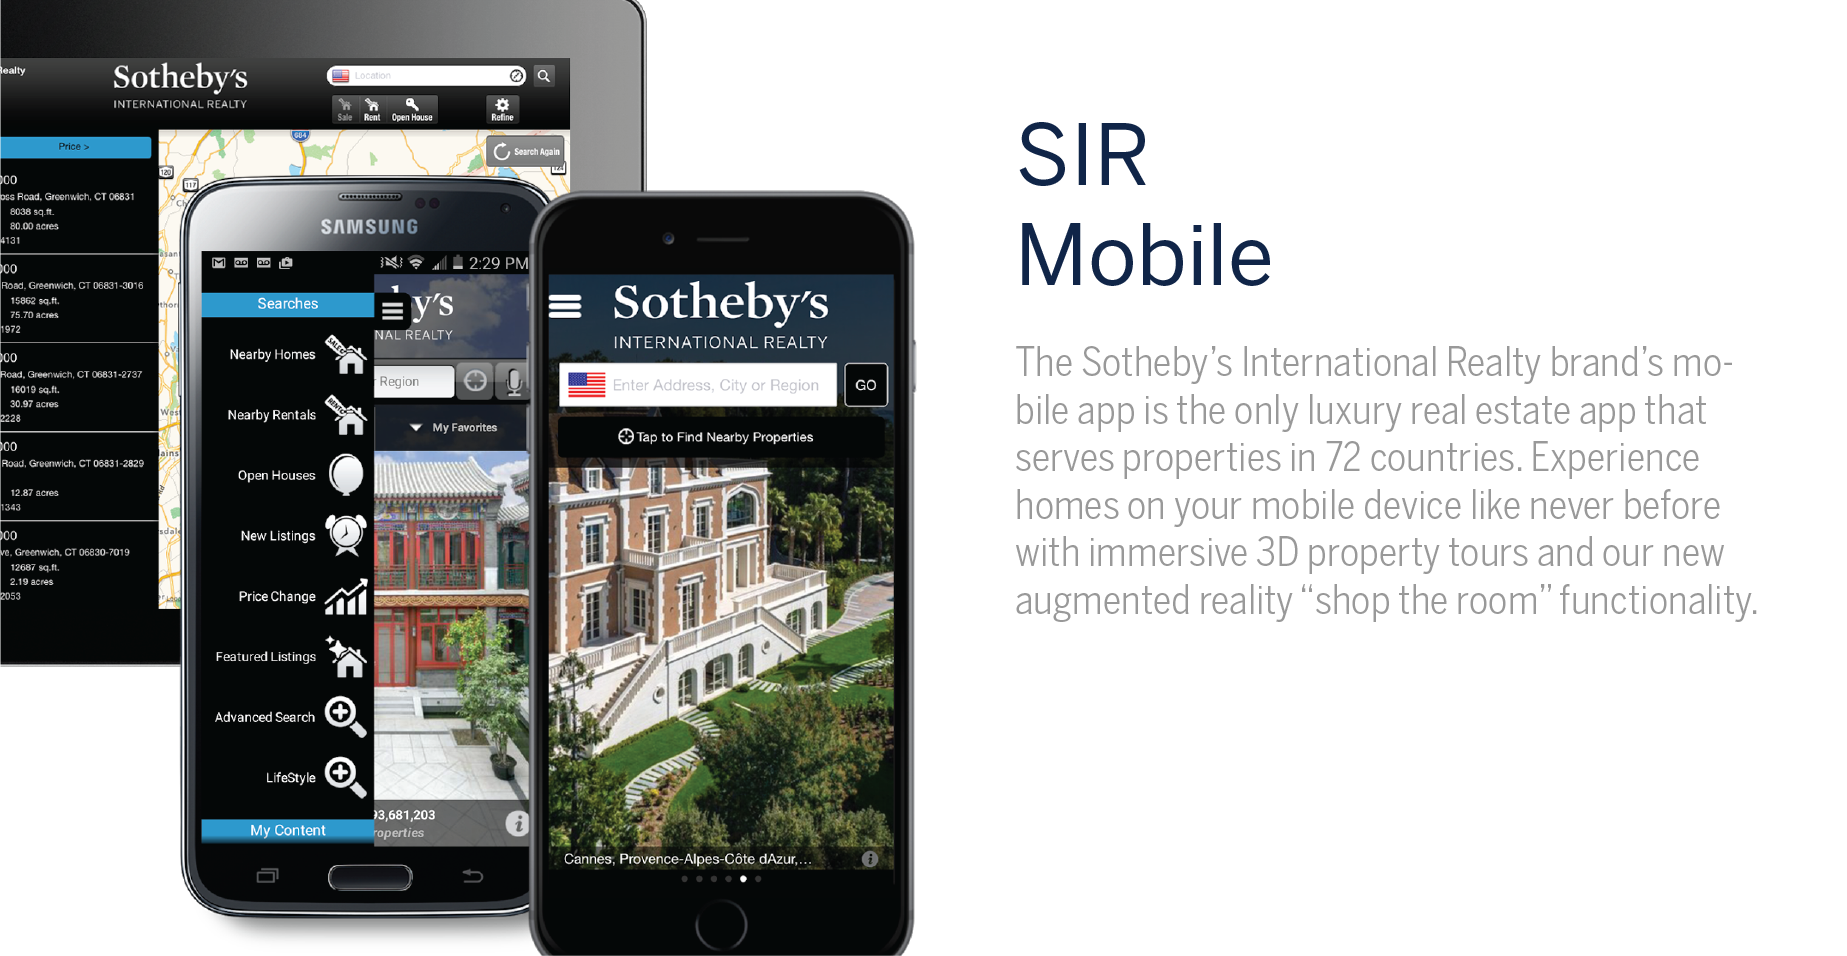 """SIR Mobile - The Sotheby's International Realty brand's mobile app is the only luxury real estate app that serves properties in 72 countries. Experience homes on your mobile device like never before with immersive 3D property tours and our new augmented reality """"shop the room"""" functionality. Download the mobile app here: Apple 